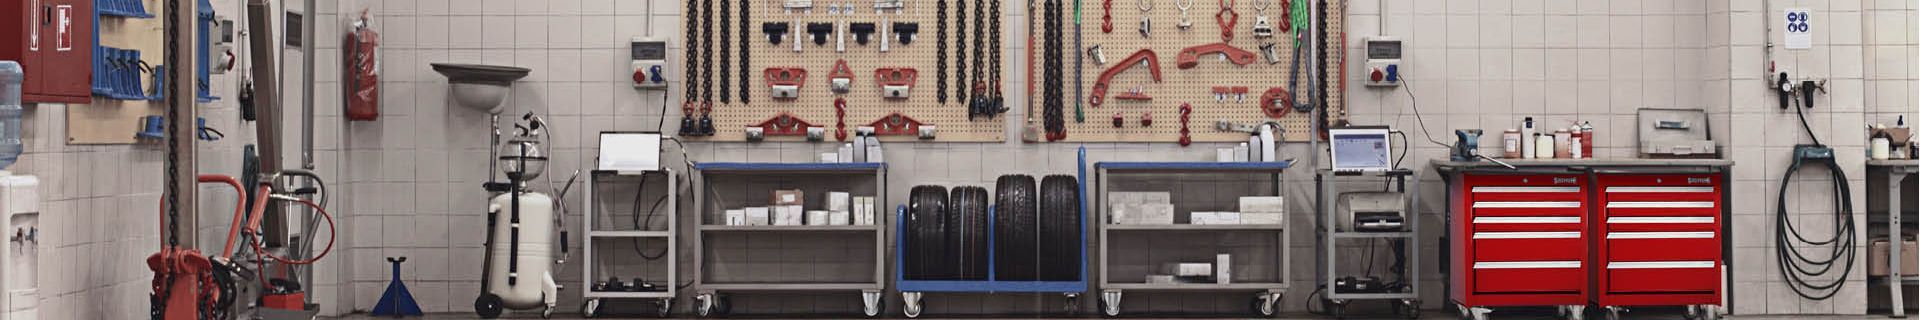 Garage with tools and workbenches.